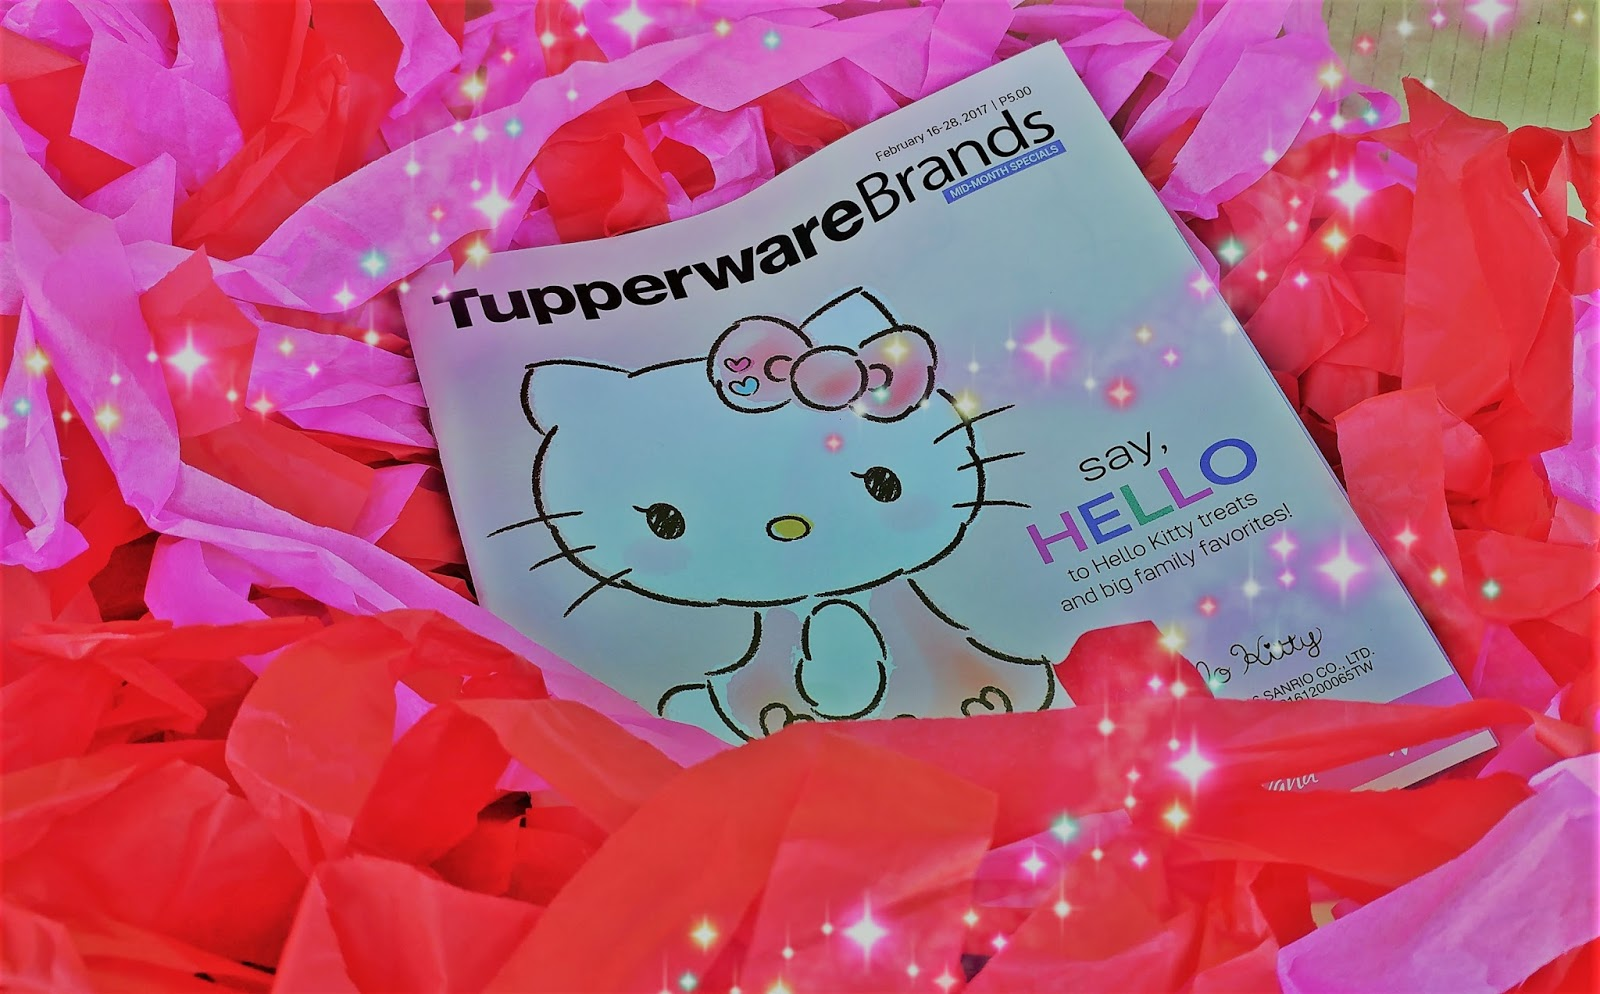 1a17ec43b ... Hello Kitty and one of the most trusted direct selling companies in the  Philippines, Tupperware Brands has collaborated to bring delight to the  young ...